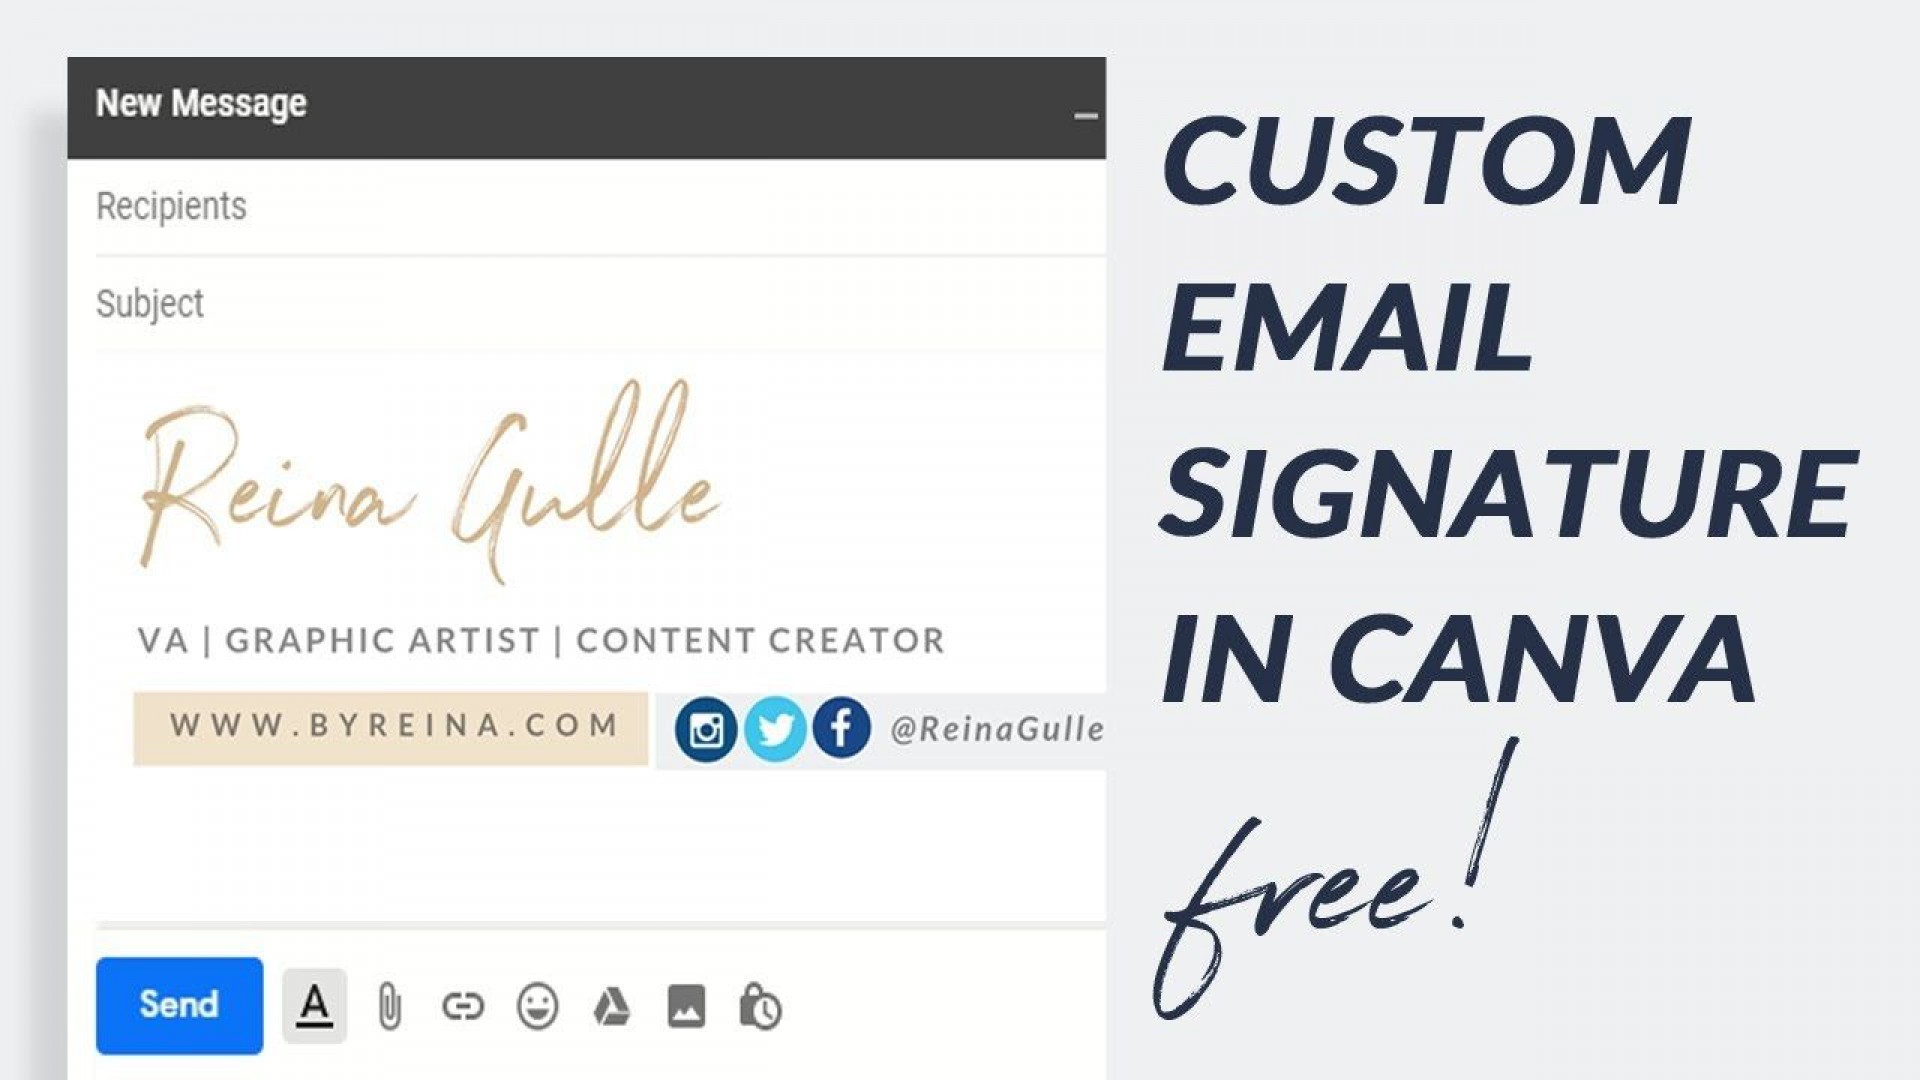 008 Stunning Professional Email Signature Template Image  Download Free Html1920